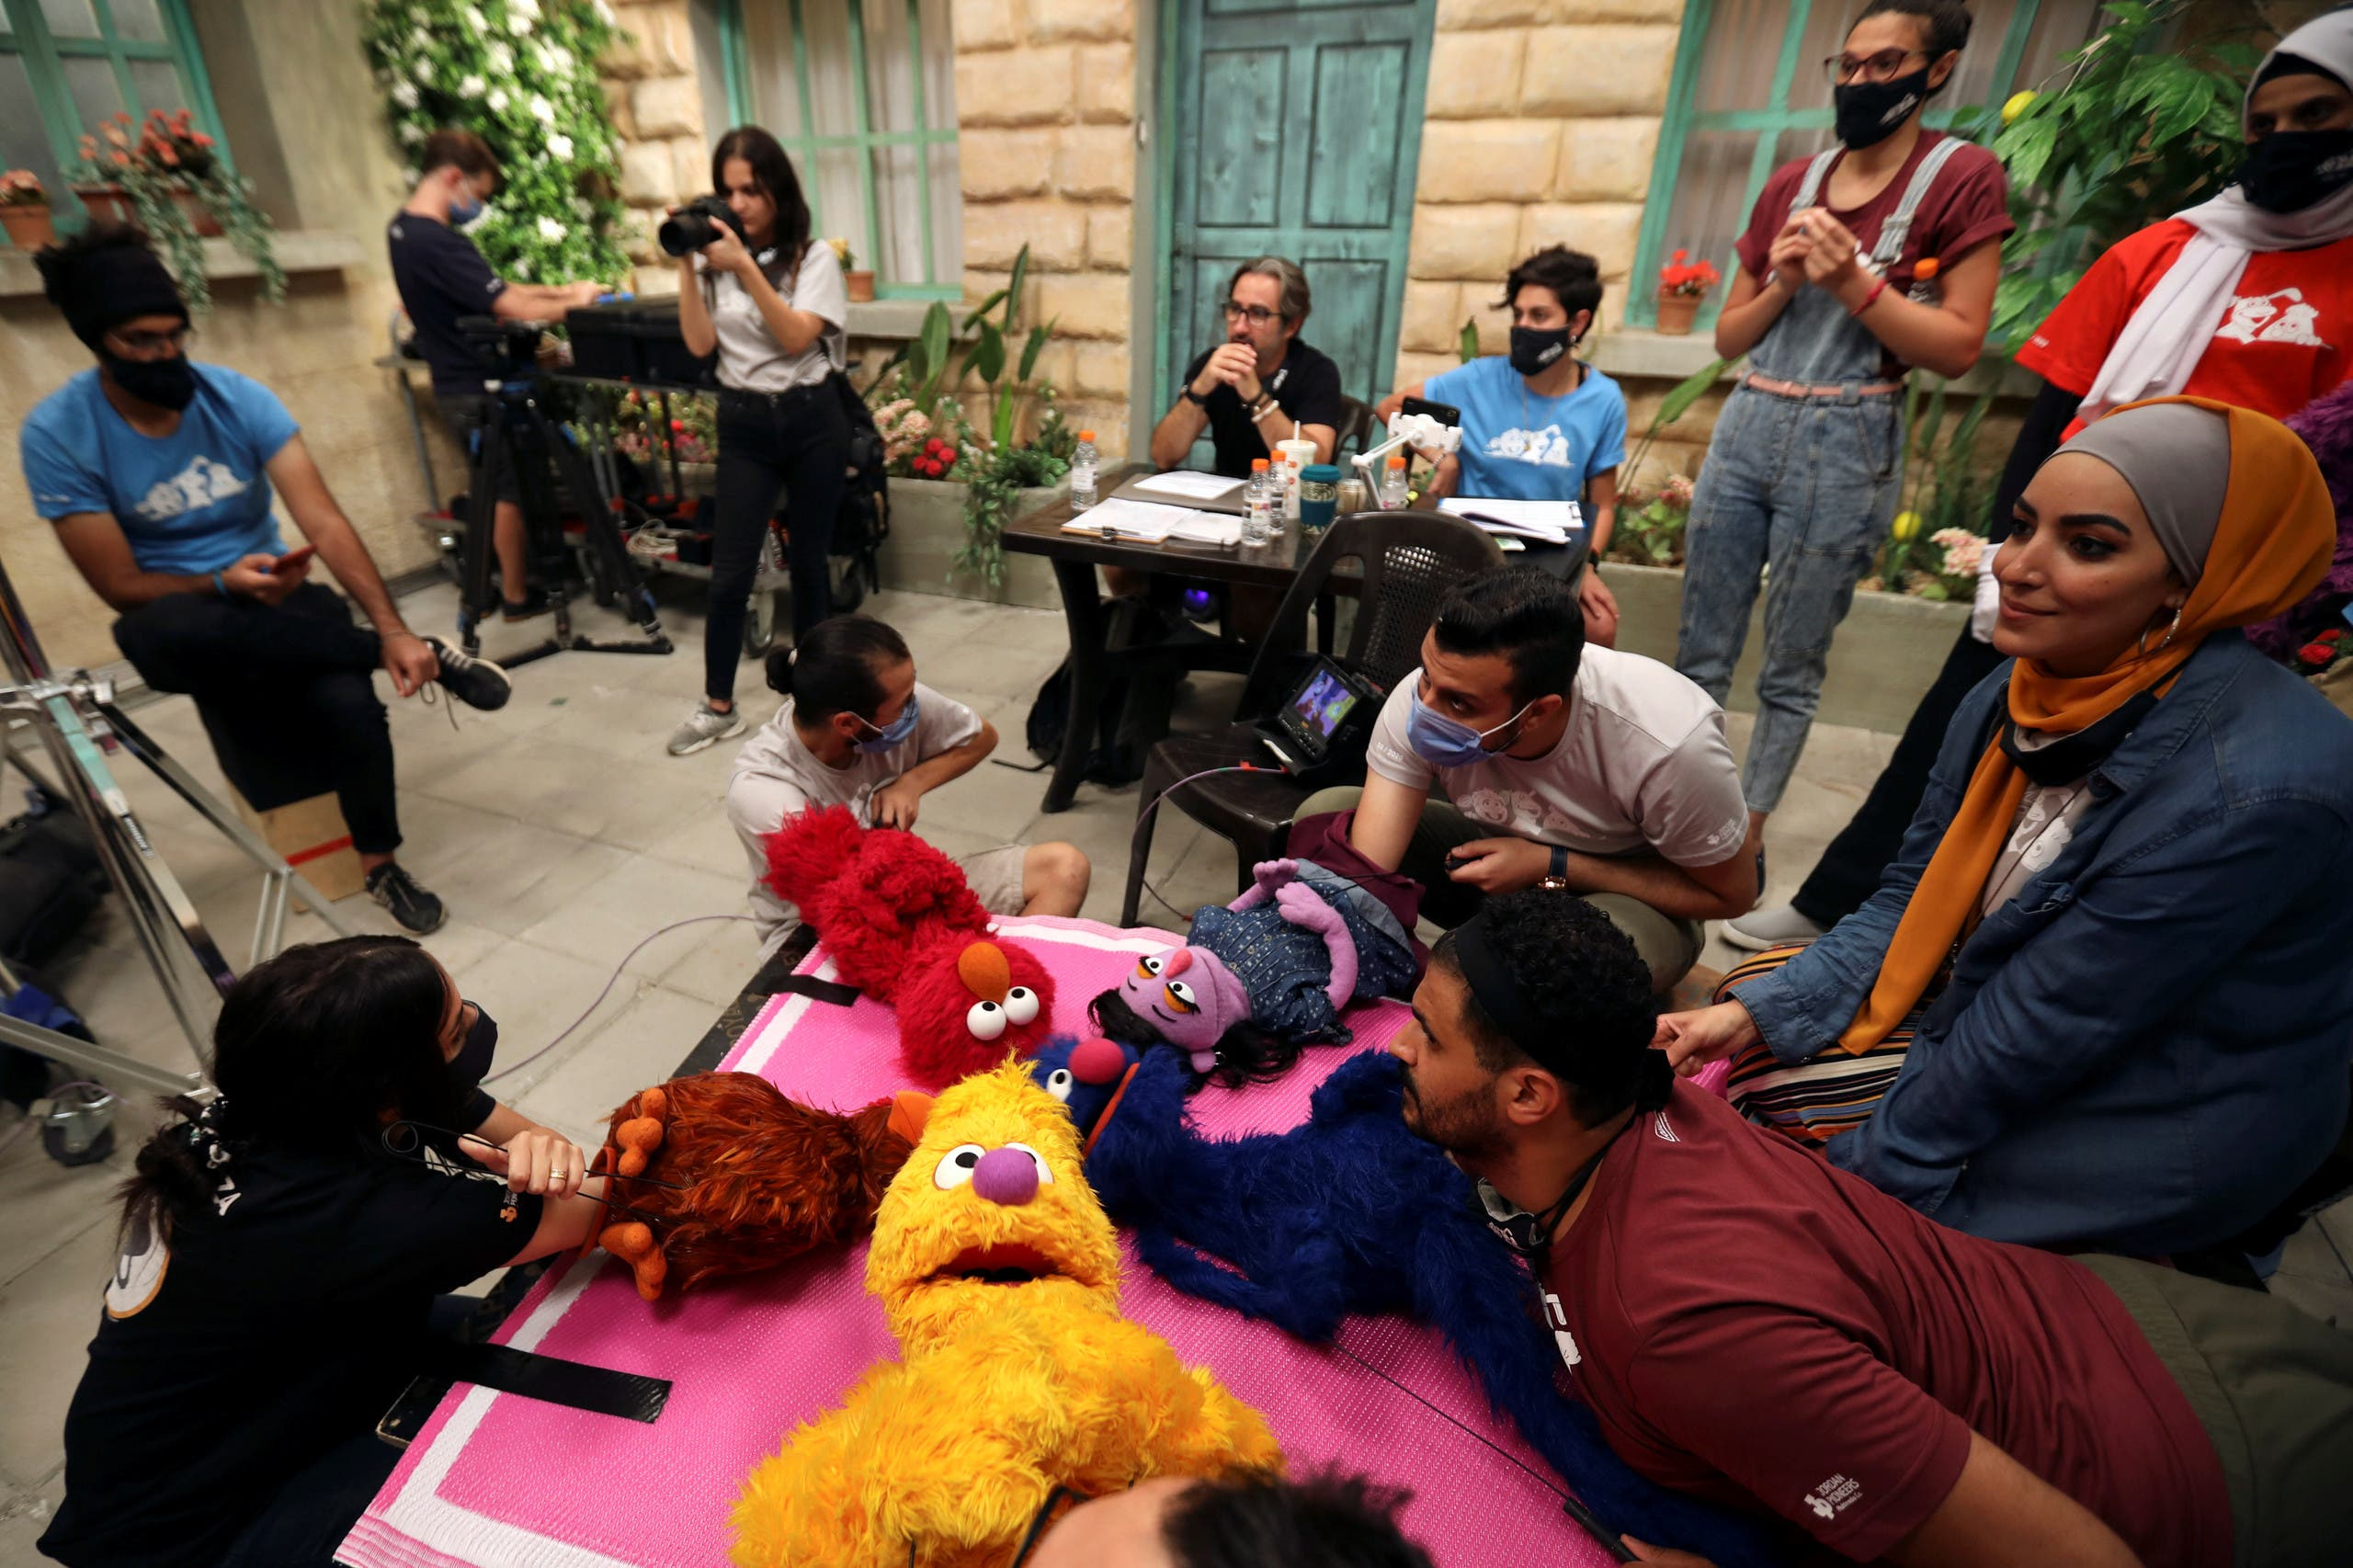 The staff of the children program Ahlan Simsim are seen as they film a scene on the set of the show in a studio in Amman, Jordan. (Reuters